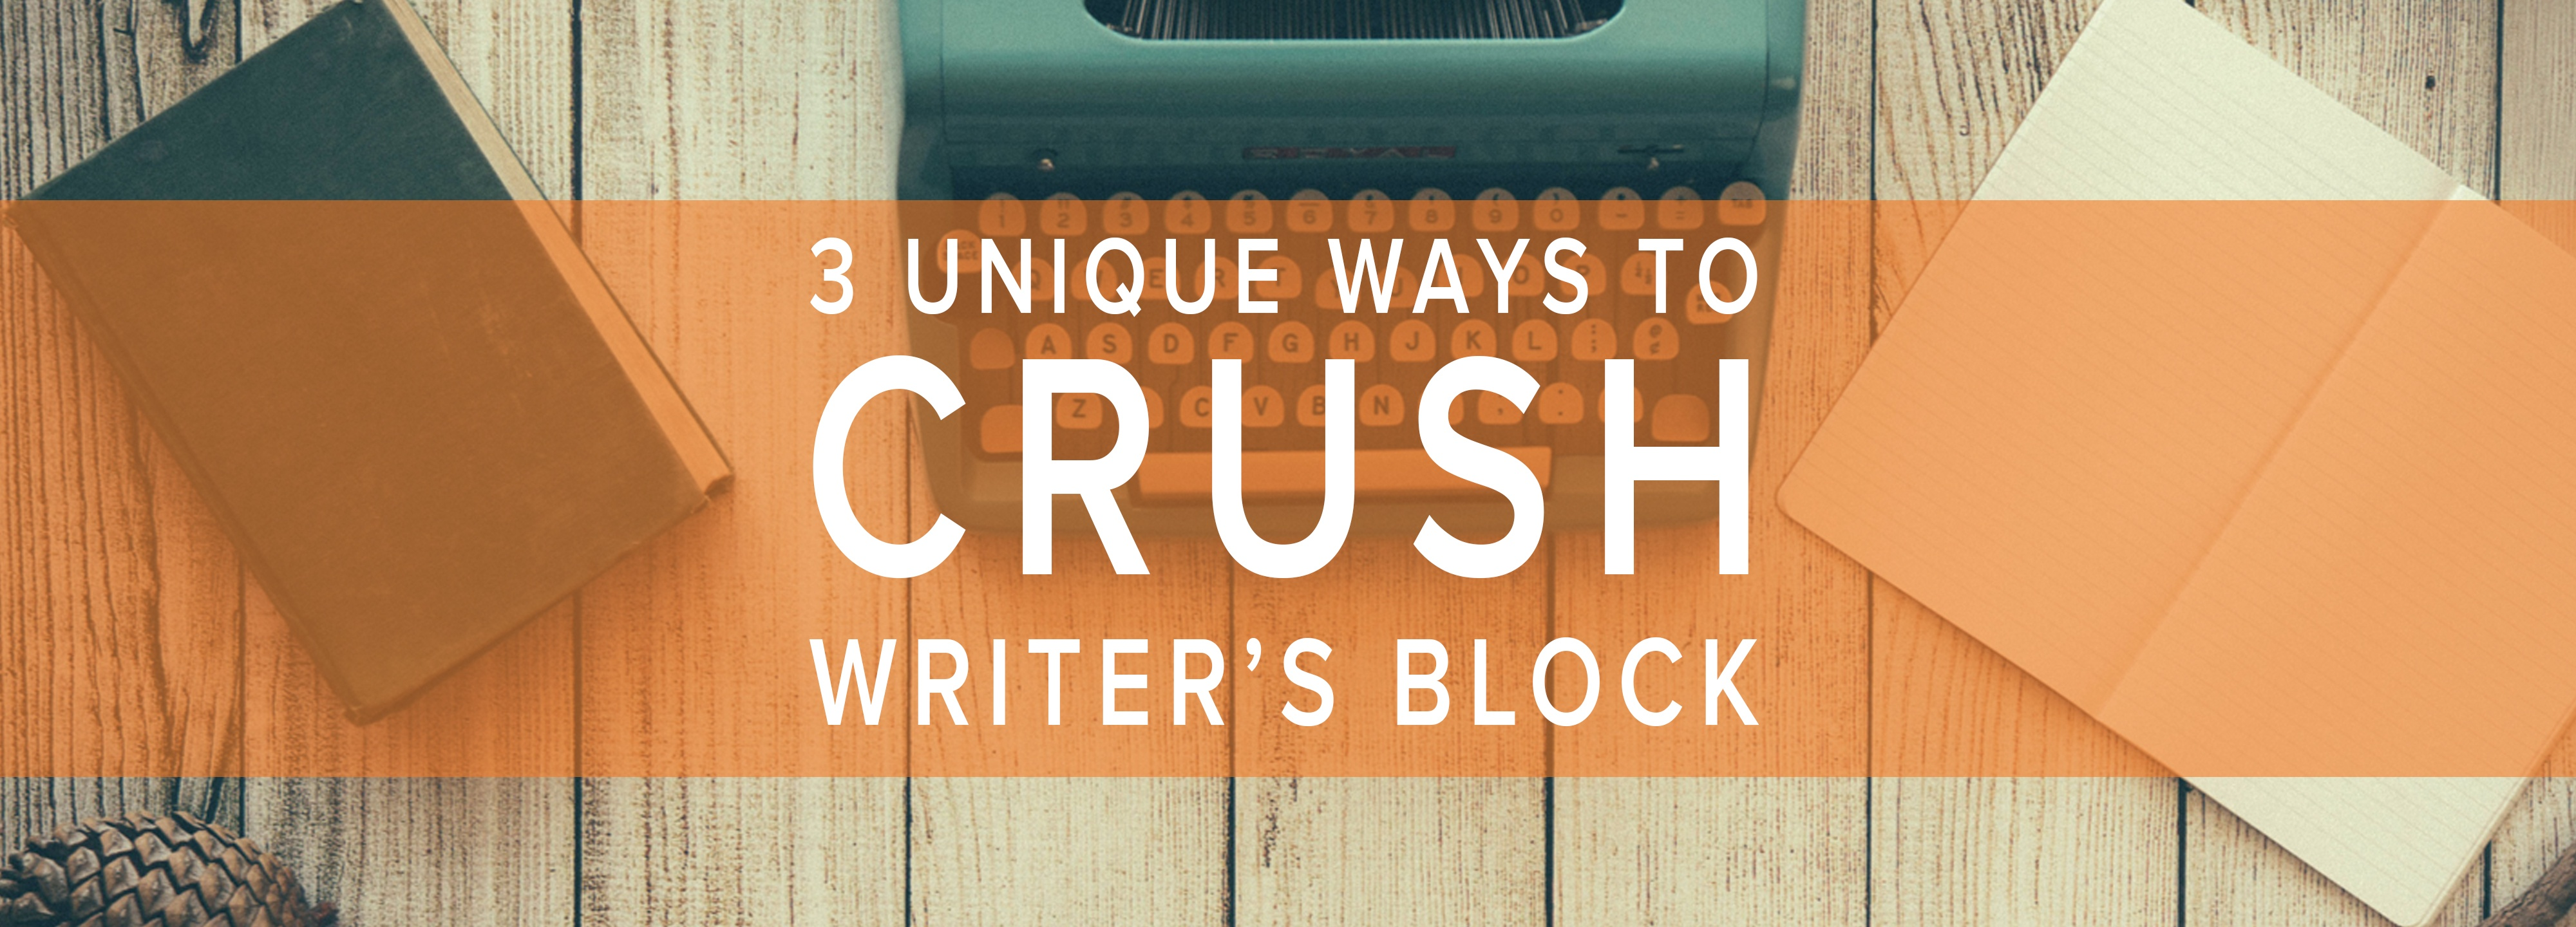 3 Unique Ways to Crush Writer's Block